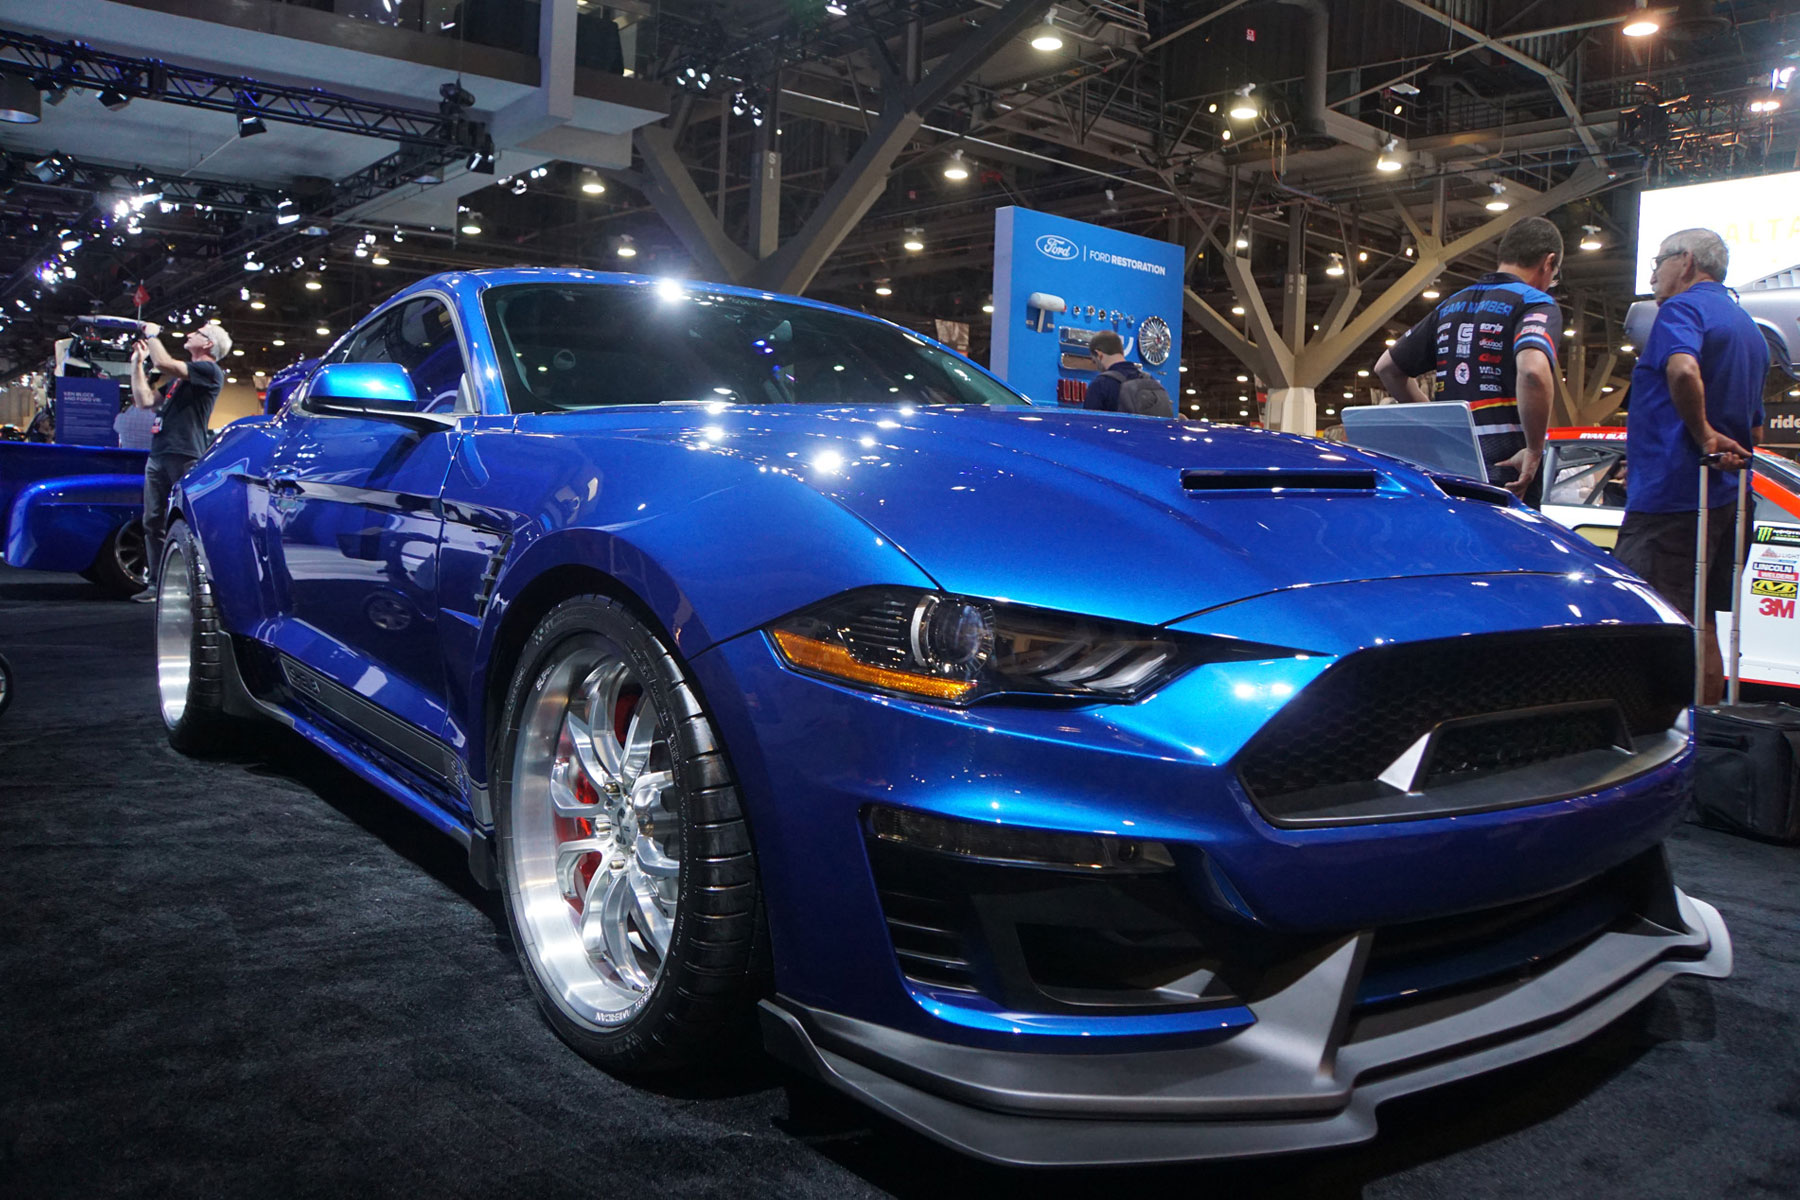 2018 Shelby Concept - Pony Press - Mustang Motorsport ...